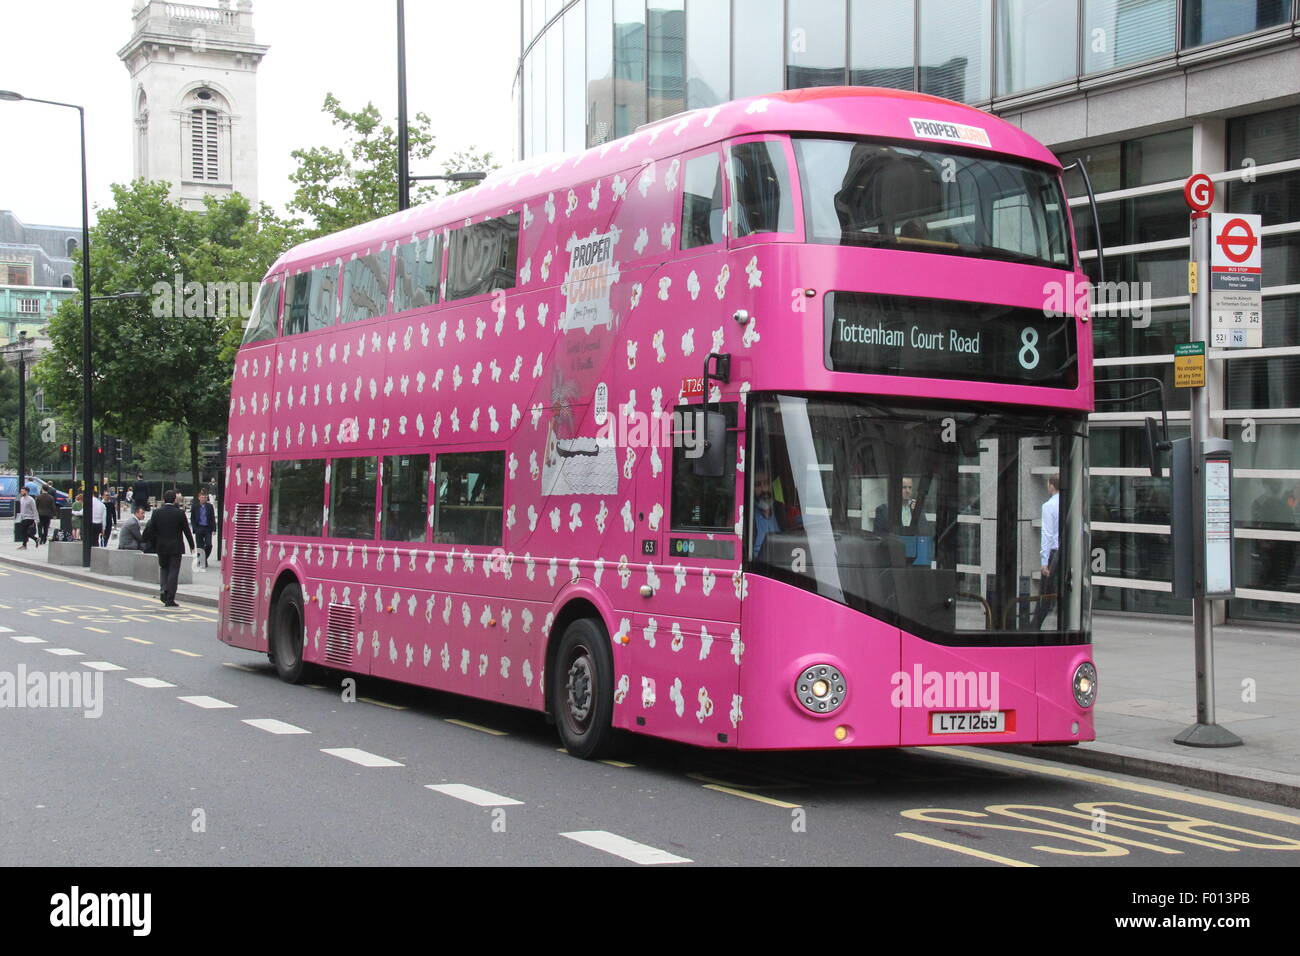 A PINK NEW ROUTEMASTER BUS IN LONDON ADVERTISING PROPER CORN - Stock Image